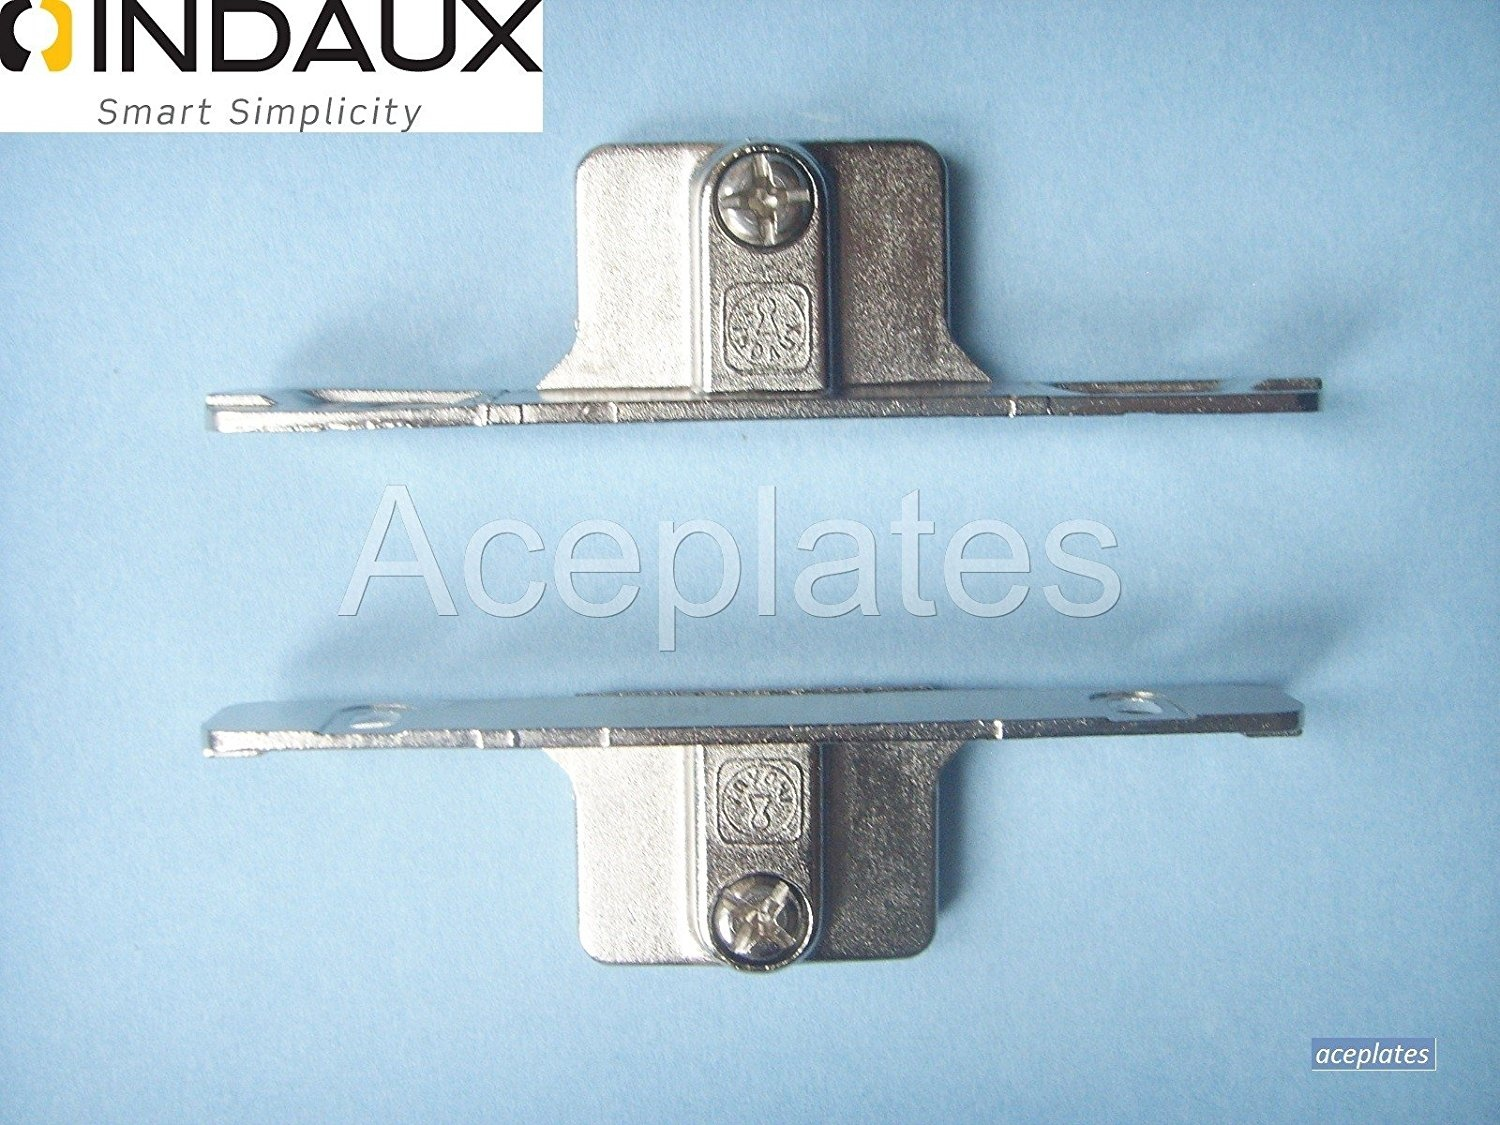 Indaux Drawer Brackets By Kitchen Doctor By Indaux Shop Online For Homeware In The United States